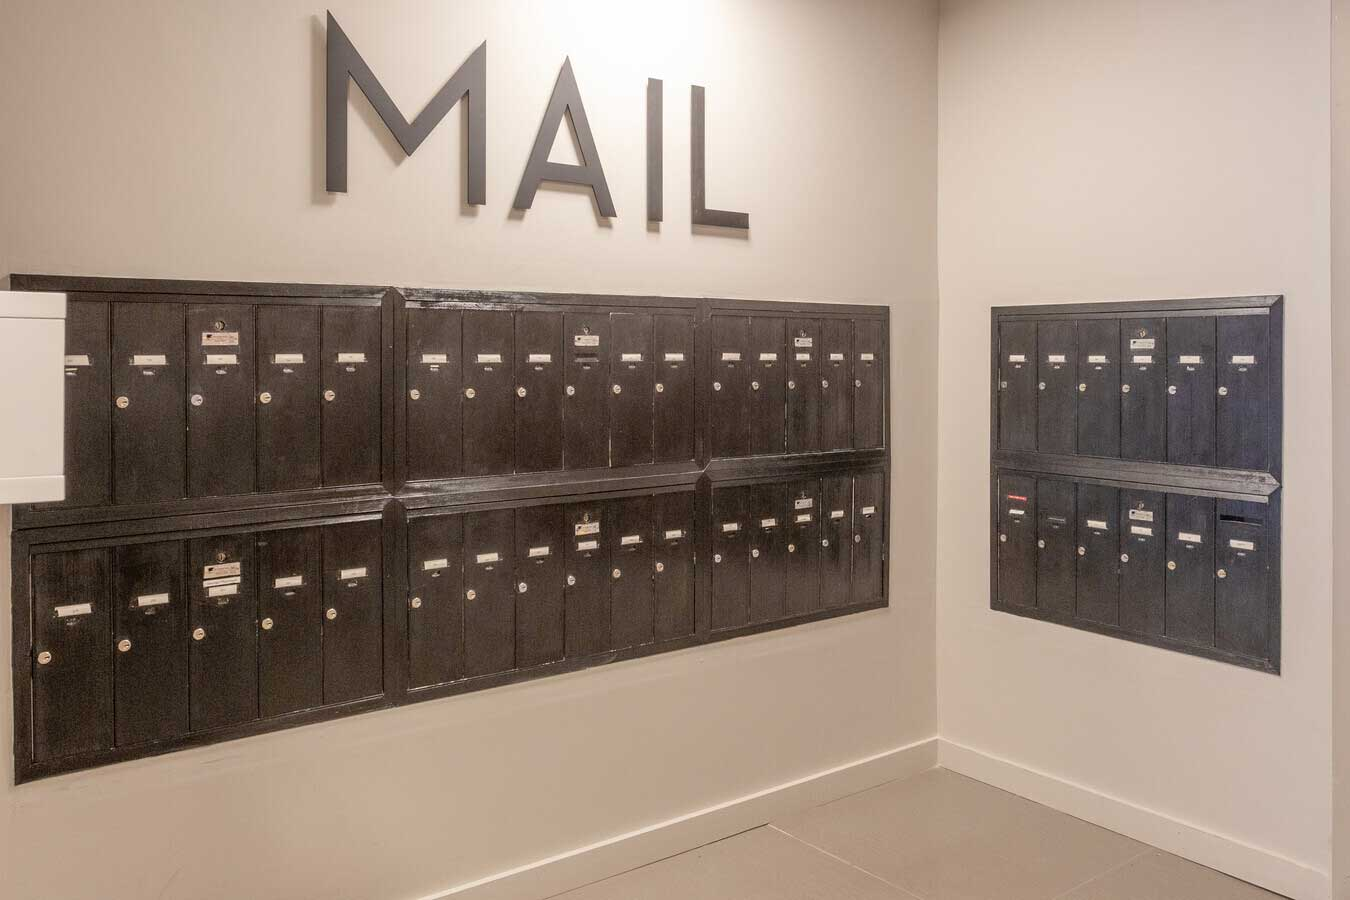 Mail Room at The Warehouse Apartments in Somerville, New Jersey